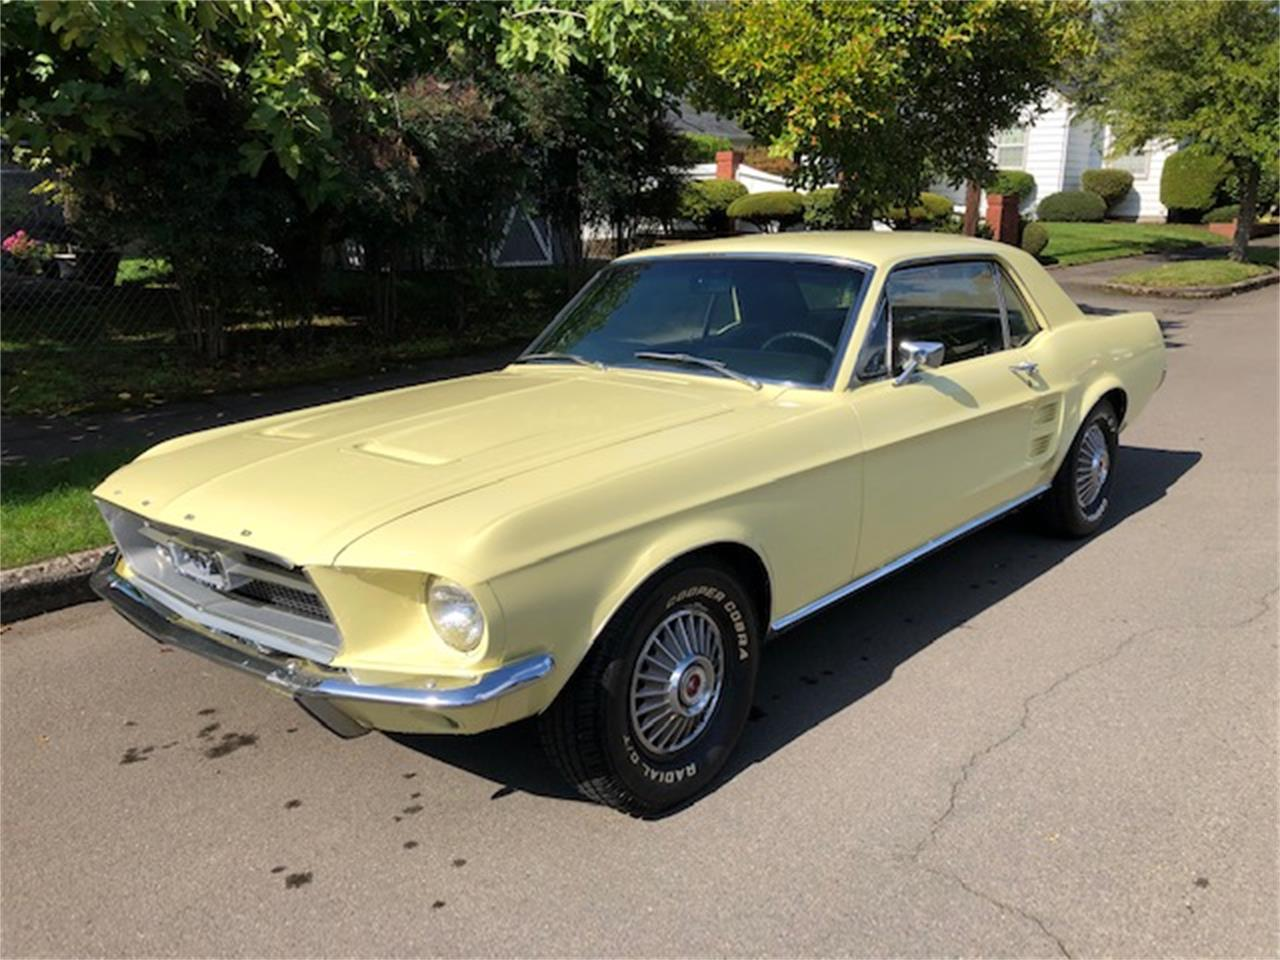 For Sale: 1967 Ford Mustang in Vancouver, Washington